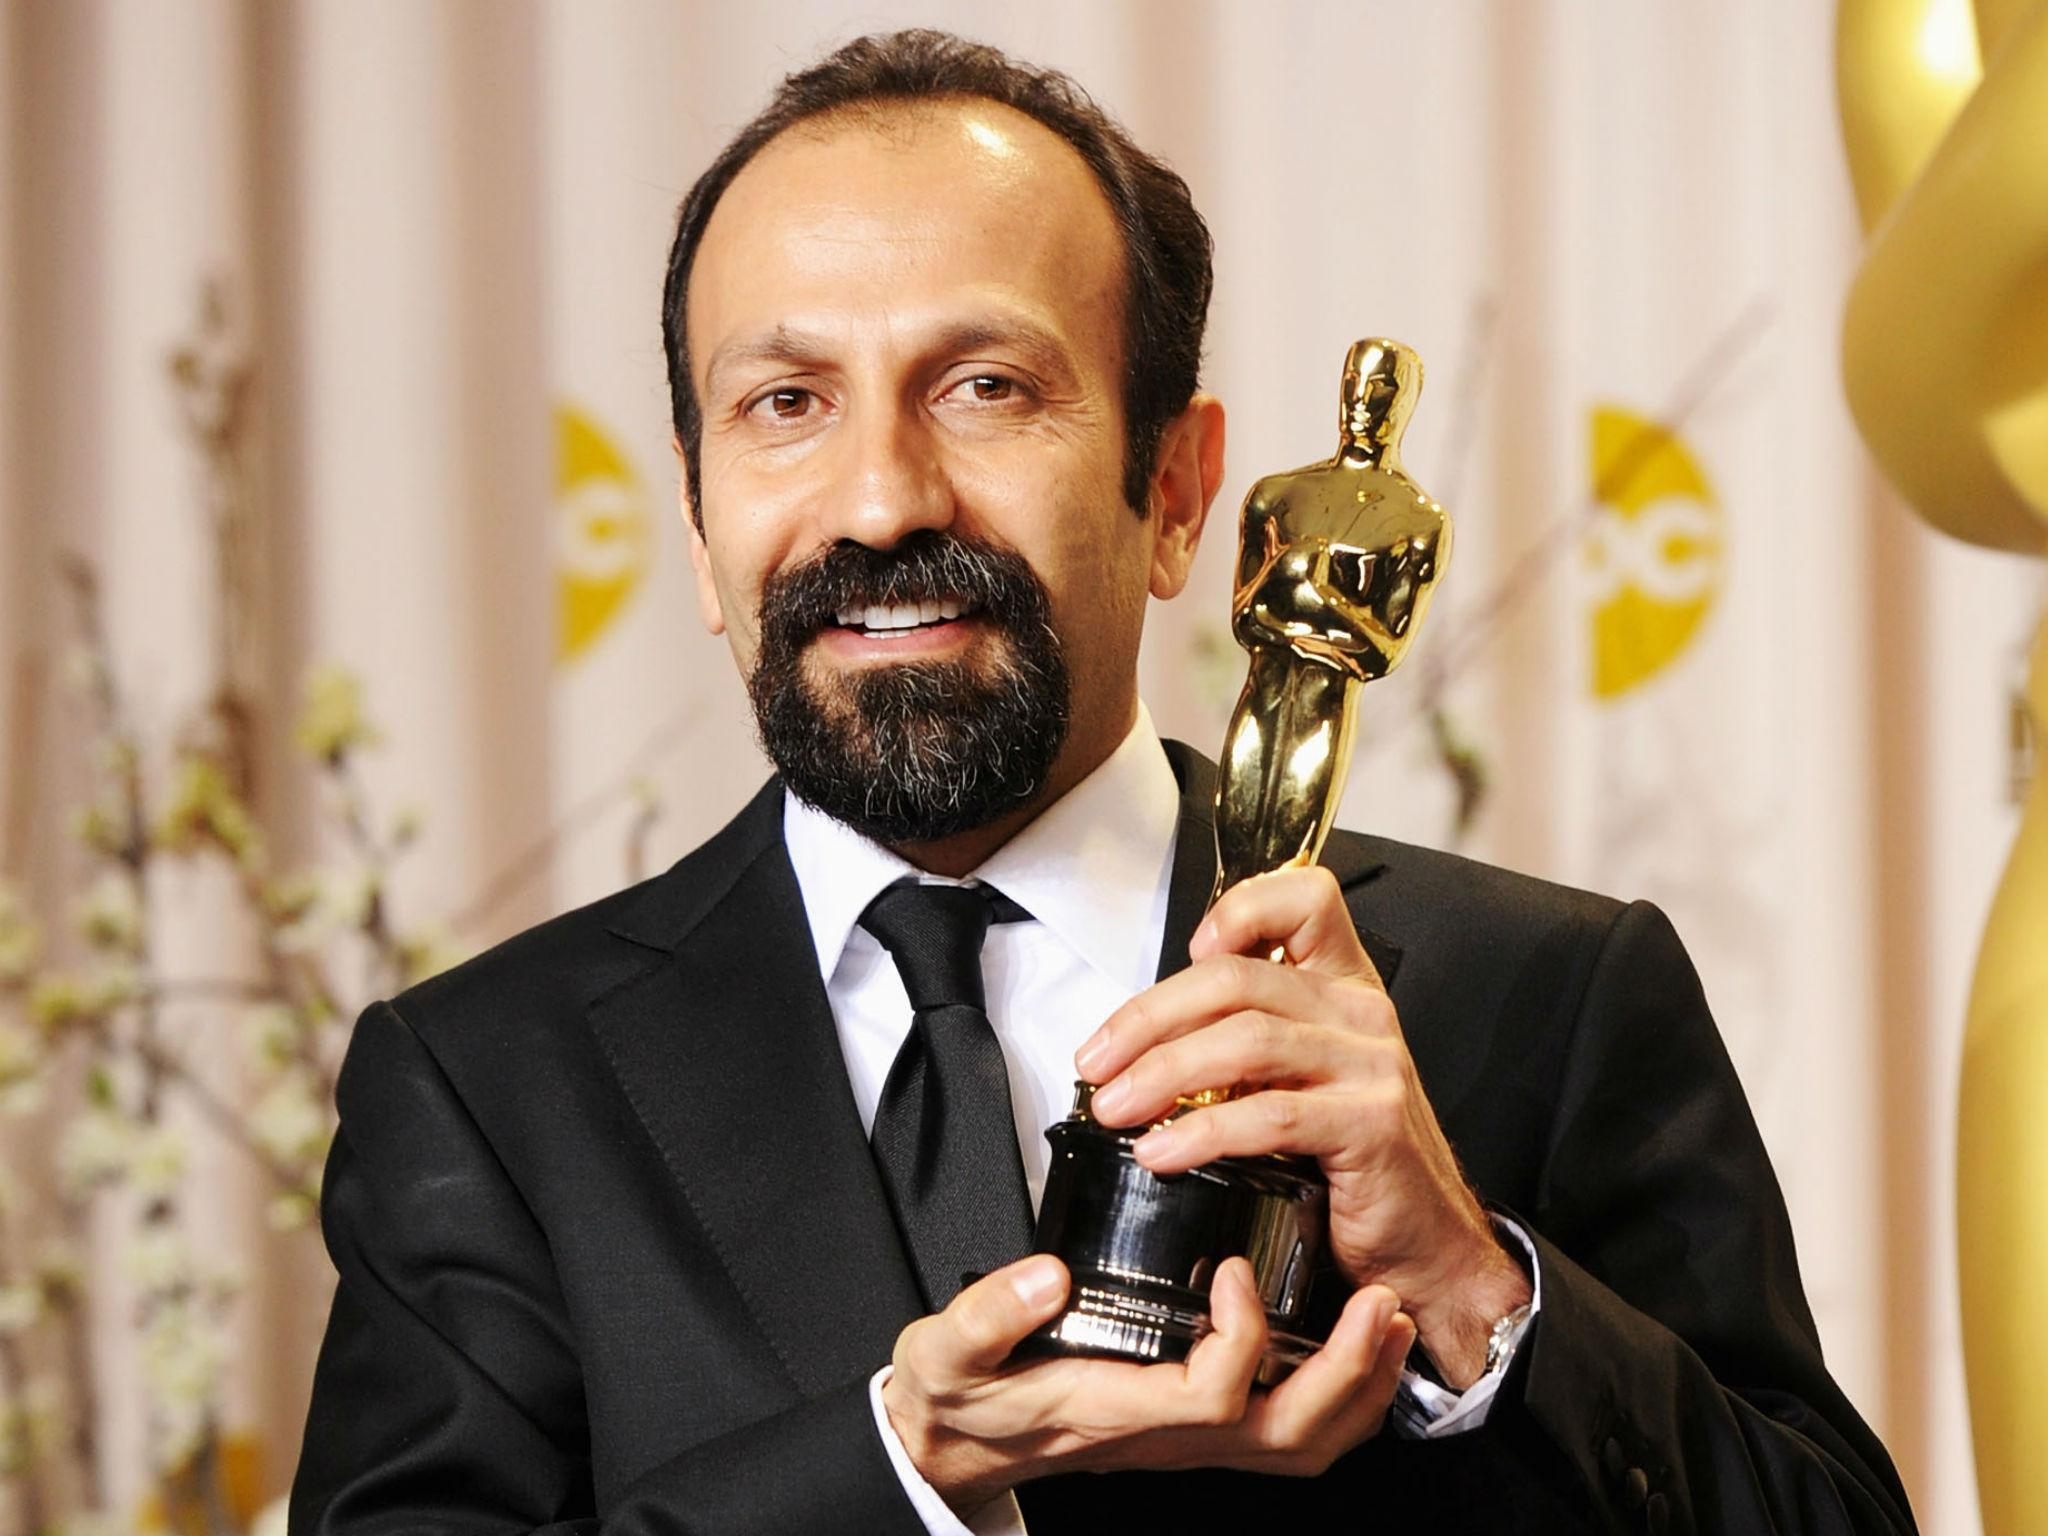 asghar farhadi heightasghar farhadi salesman, asghar farhadi film, asghar farhadi oscar, asghar farhadi interview, asghar farhadi a separation, asghar farhadi the guardian, asghar farhadi movie, asghar farhadi imdb, asghar farhadi wiki, asghar farhadi last movie, asghar farhadi past, asghar farhadi trump oscar, asghar farhadi height, asghar farhadi forushande, asghar farhadi quotes, asghar farhadi photo, asghar farhadi kinopoisk, asghar farhadi email address, asghar farhadi interview with haaretz, asghar farhadi director